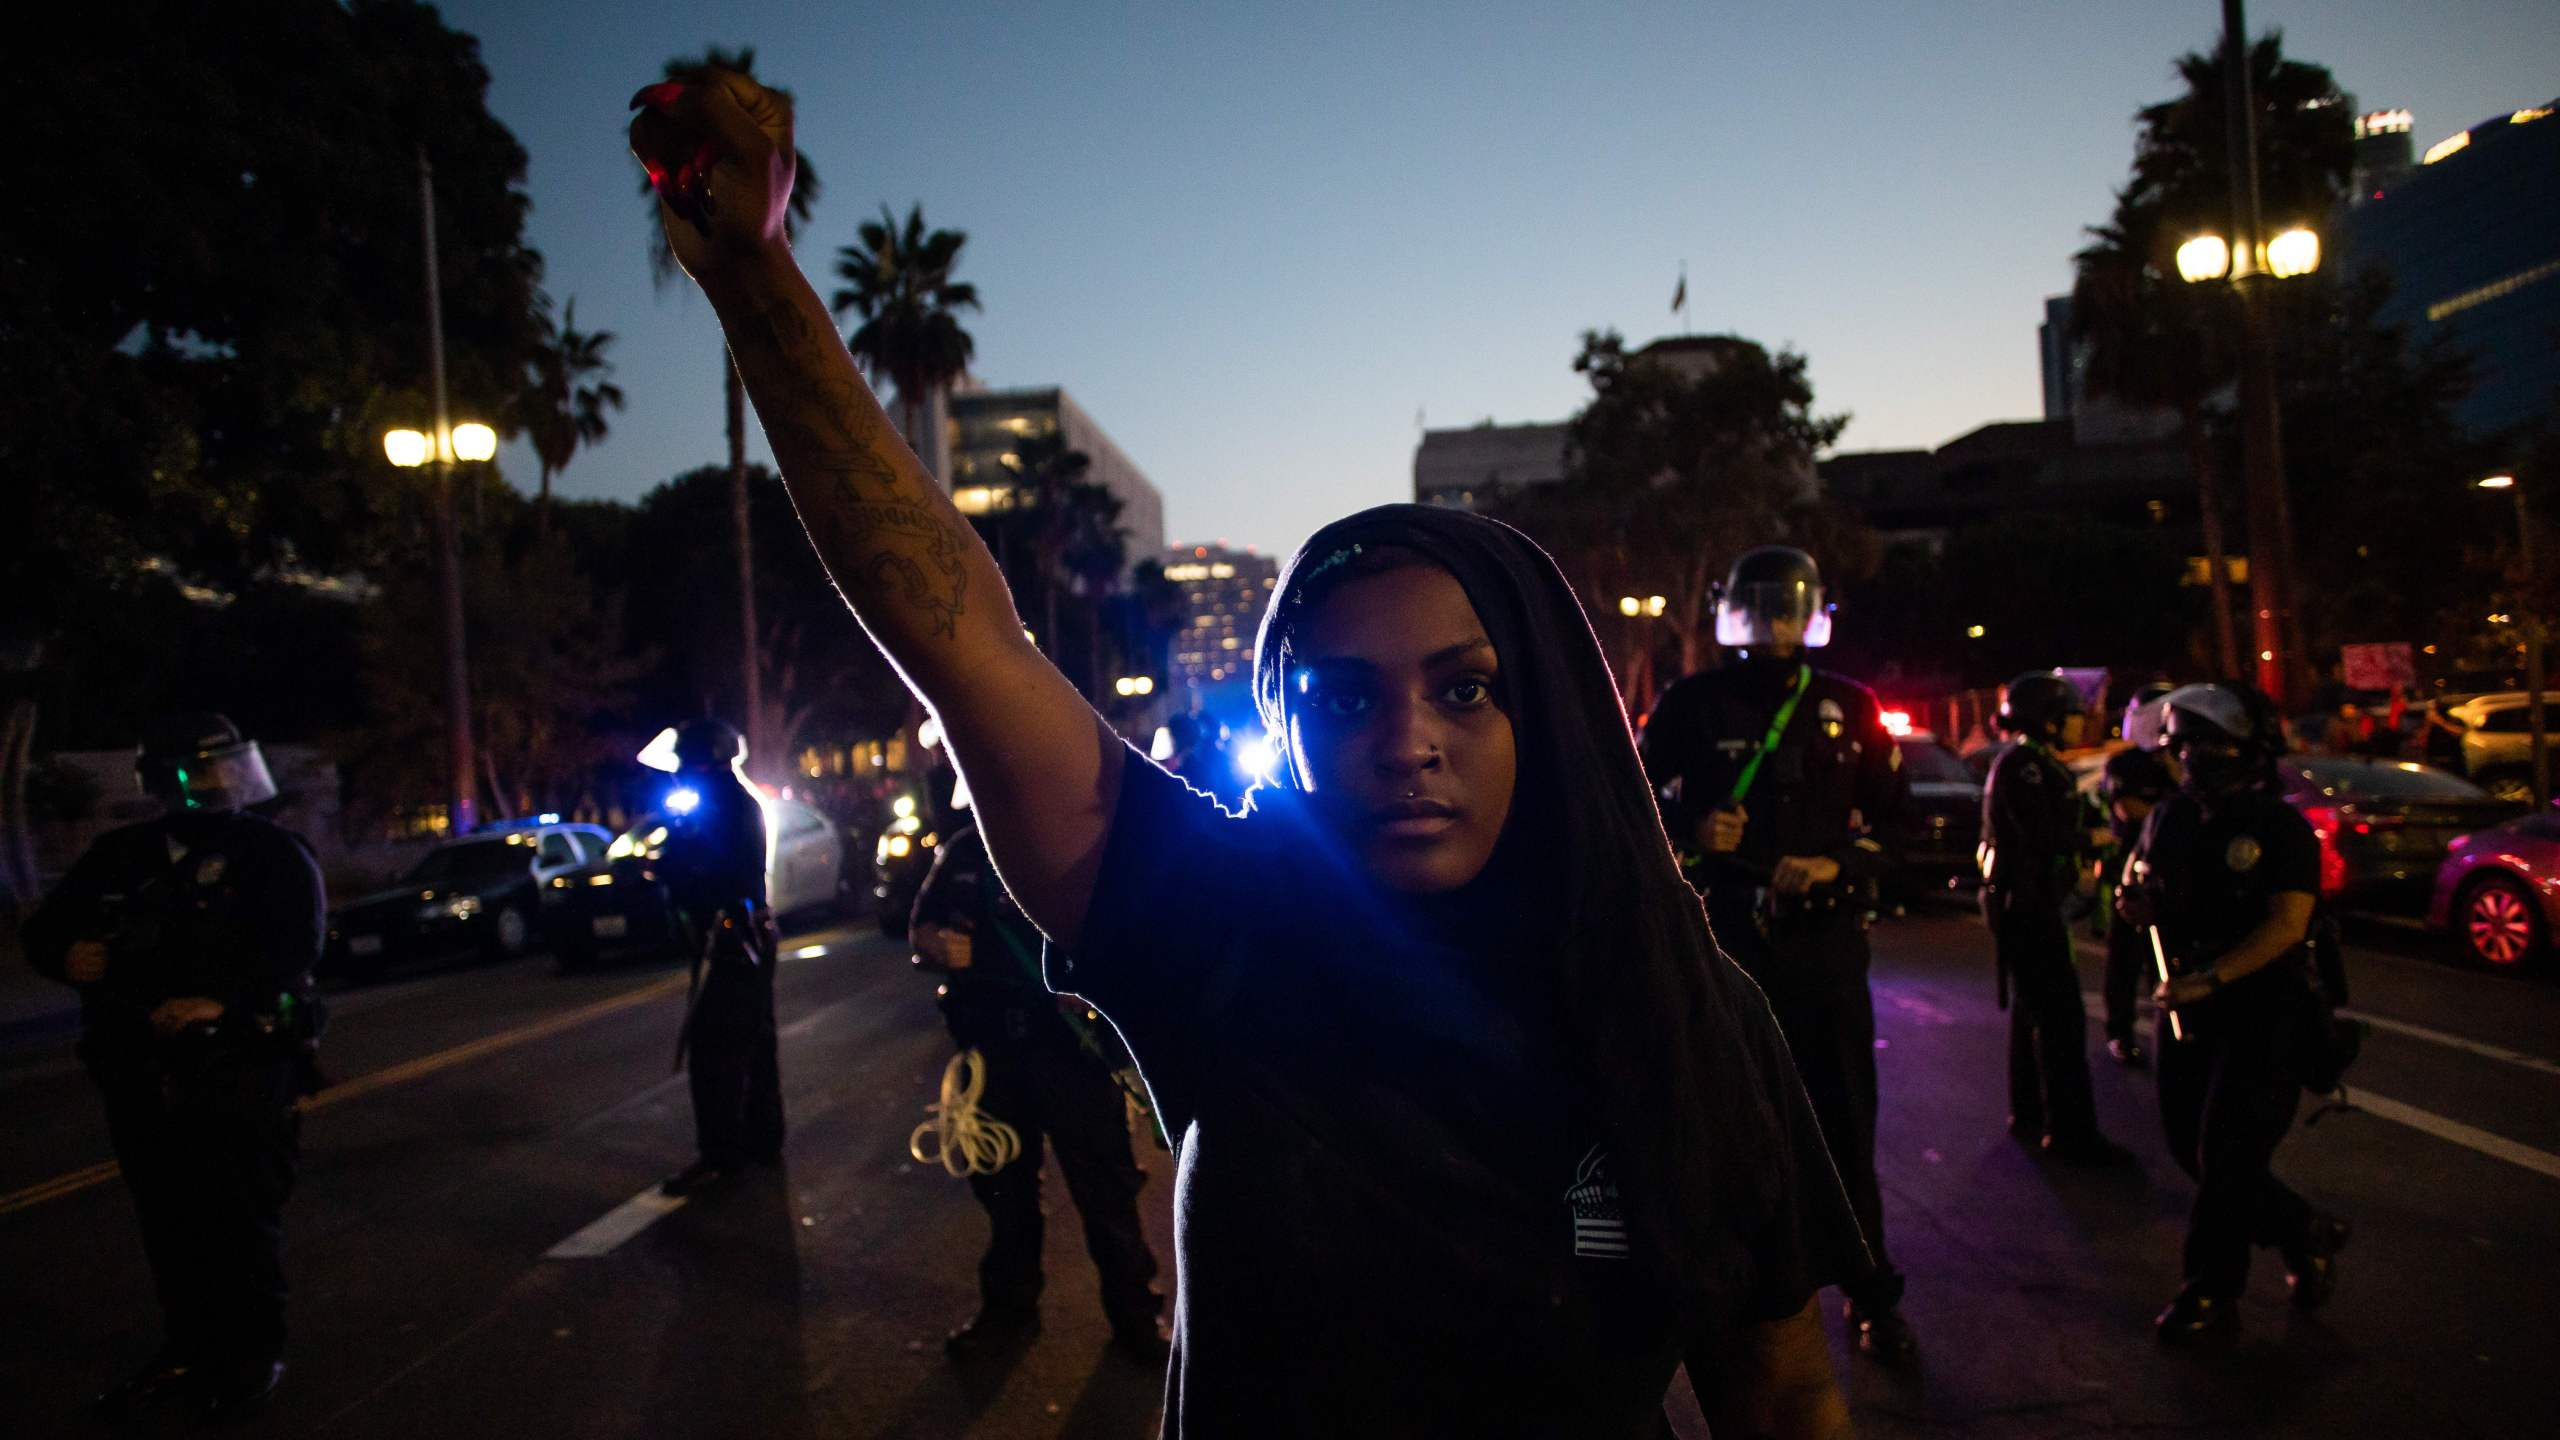 A woman holds up her fist in front of a row of police officers during a protest demanding justice for George Floyd, Breonna Taylor and also in solidarity with Portland's protests, in downtown Los Angeles, on July 25, 2020. (APU GOMES/AFP via Getty Images)